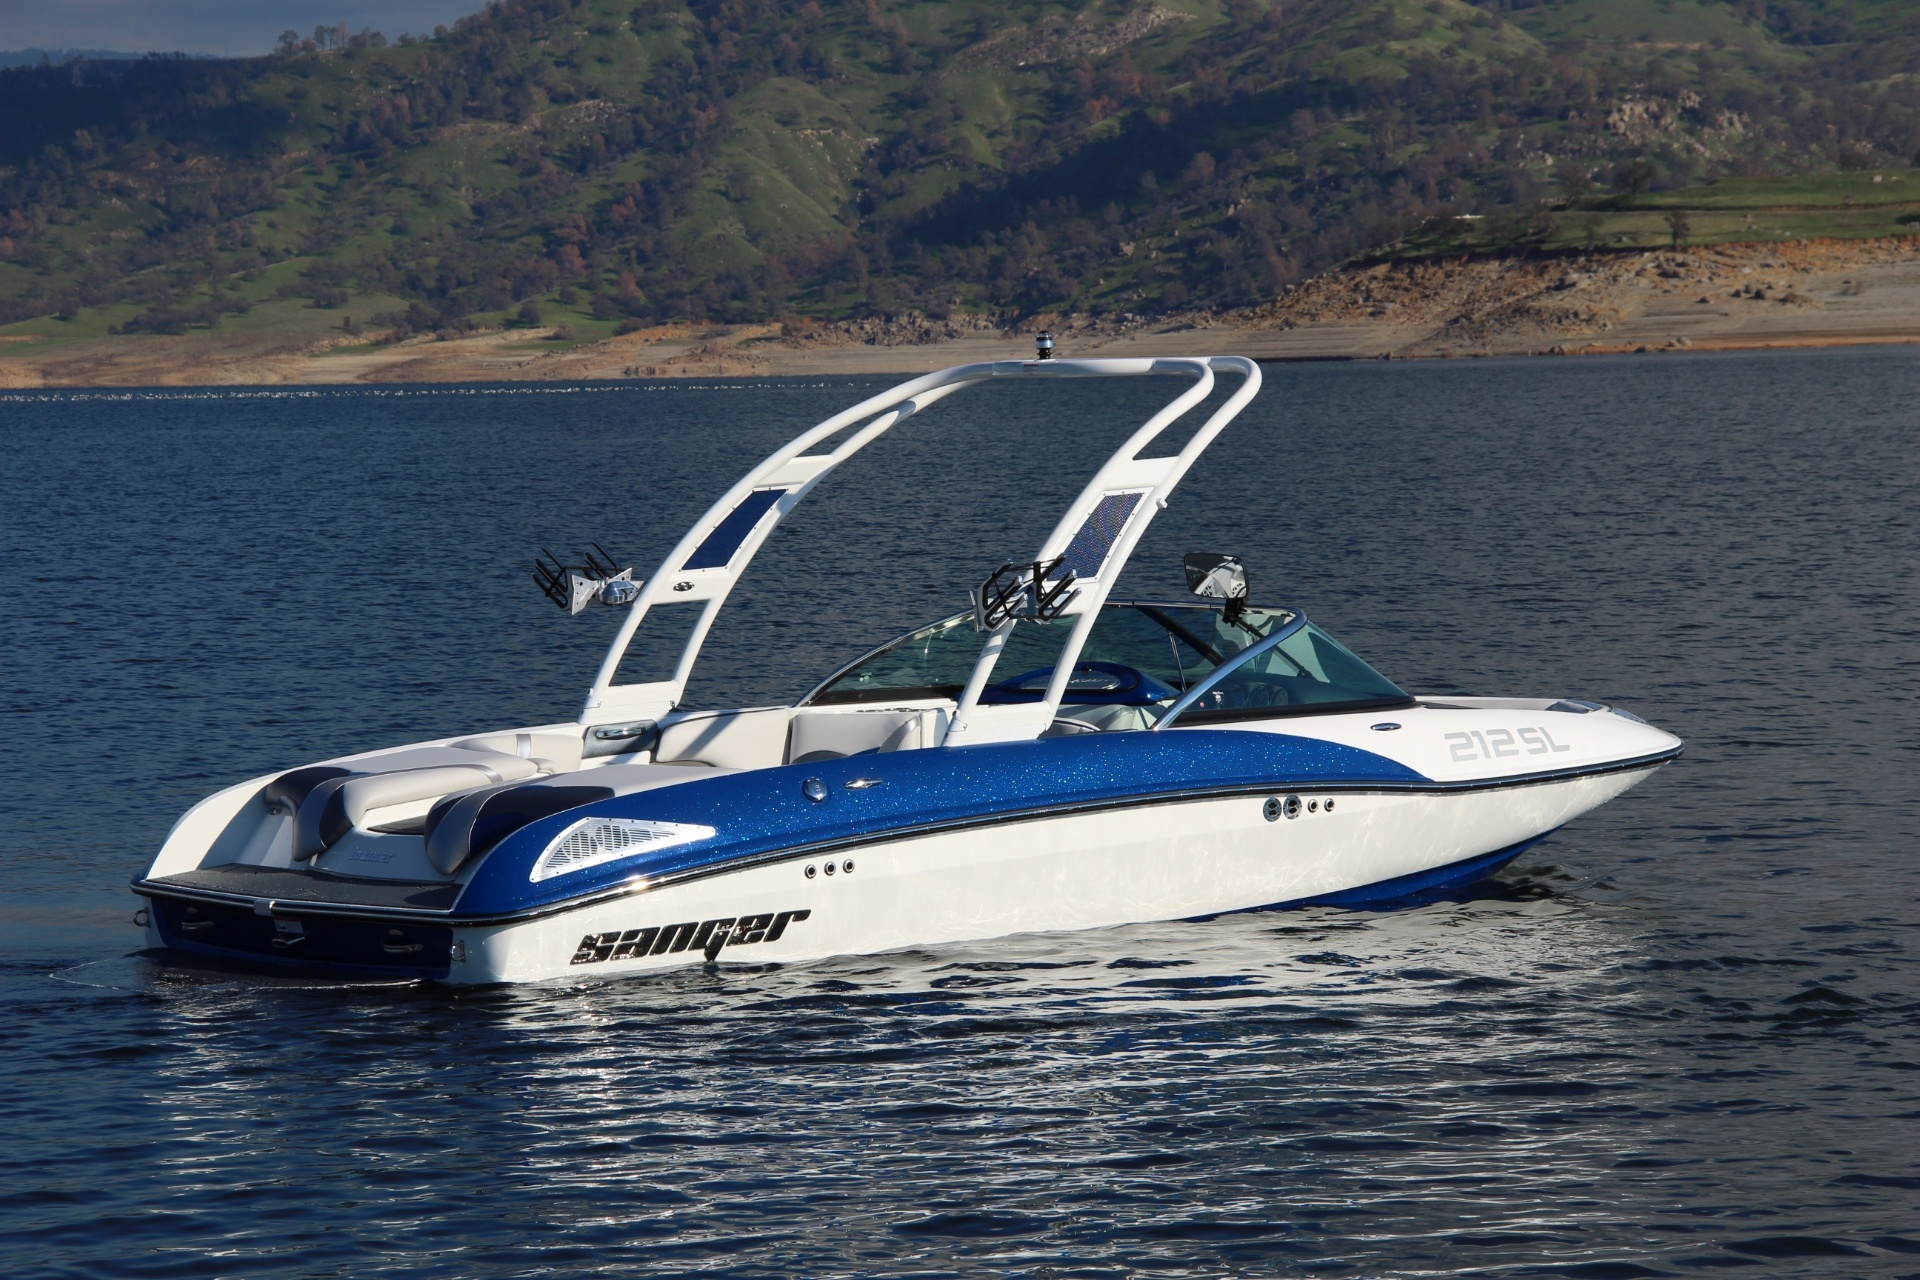 THE NEW 212 SL SURF